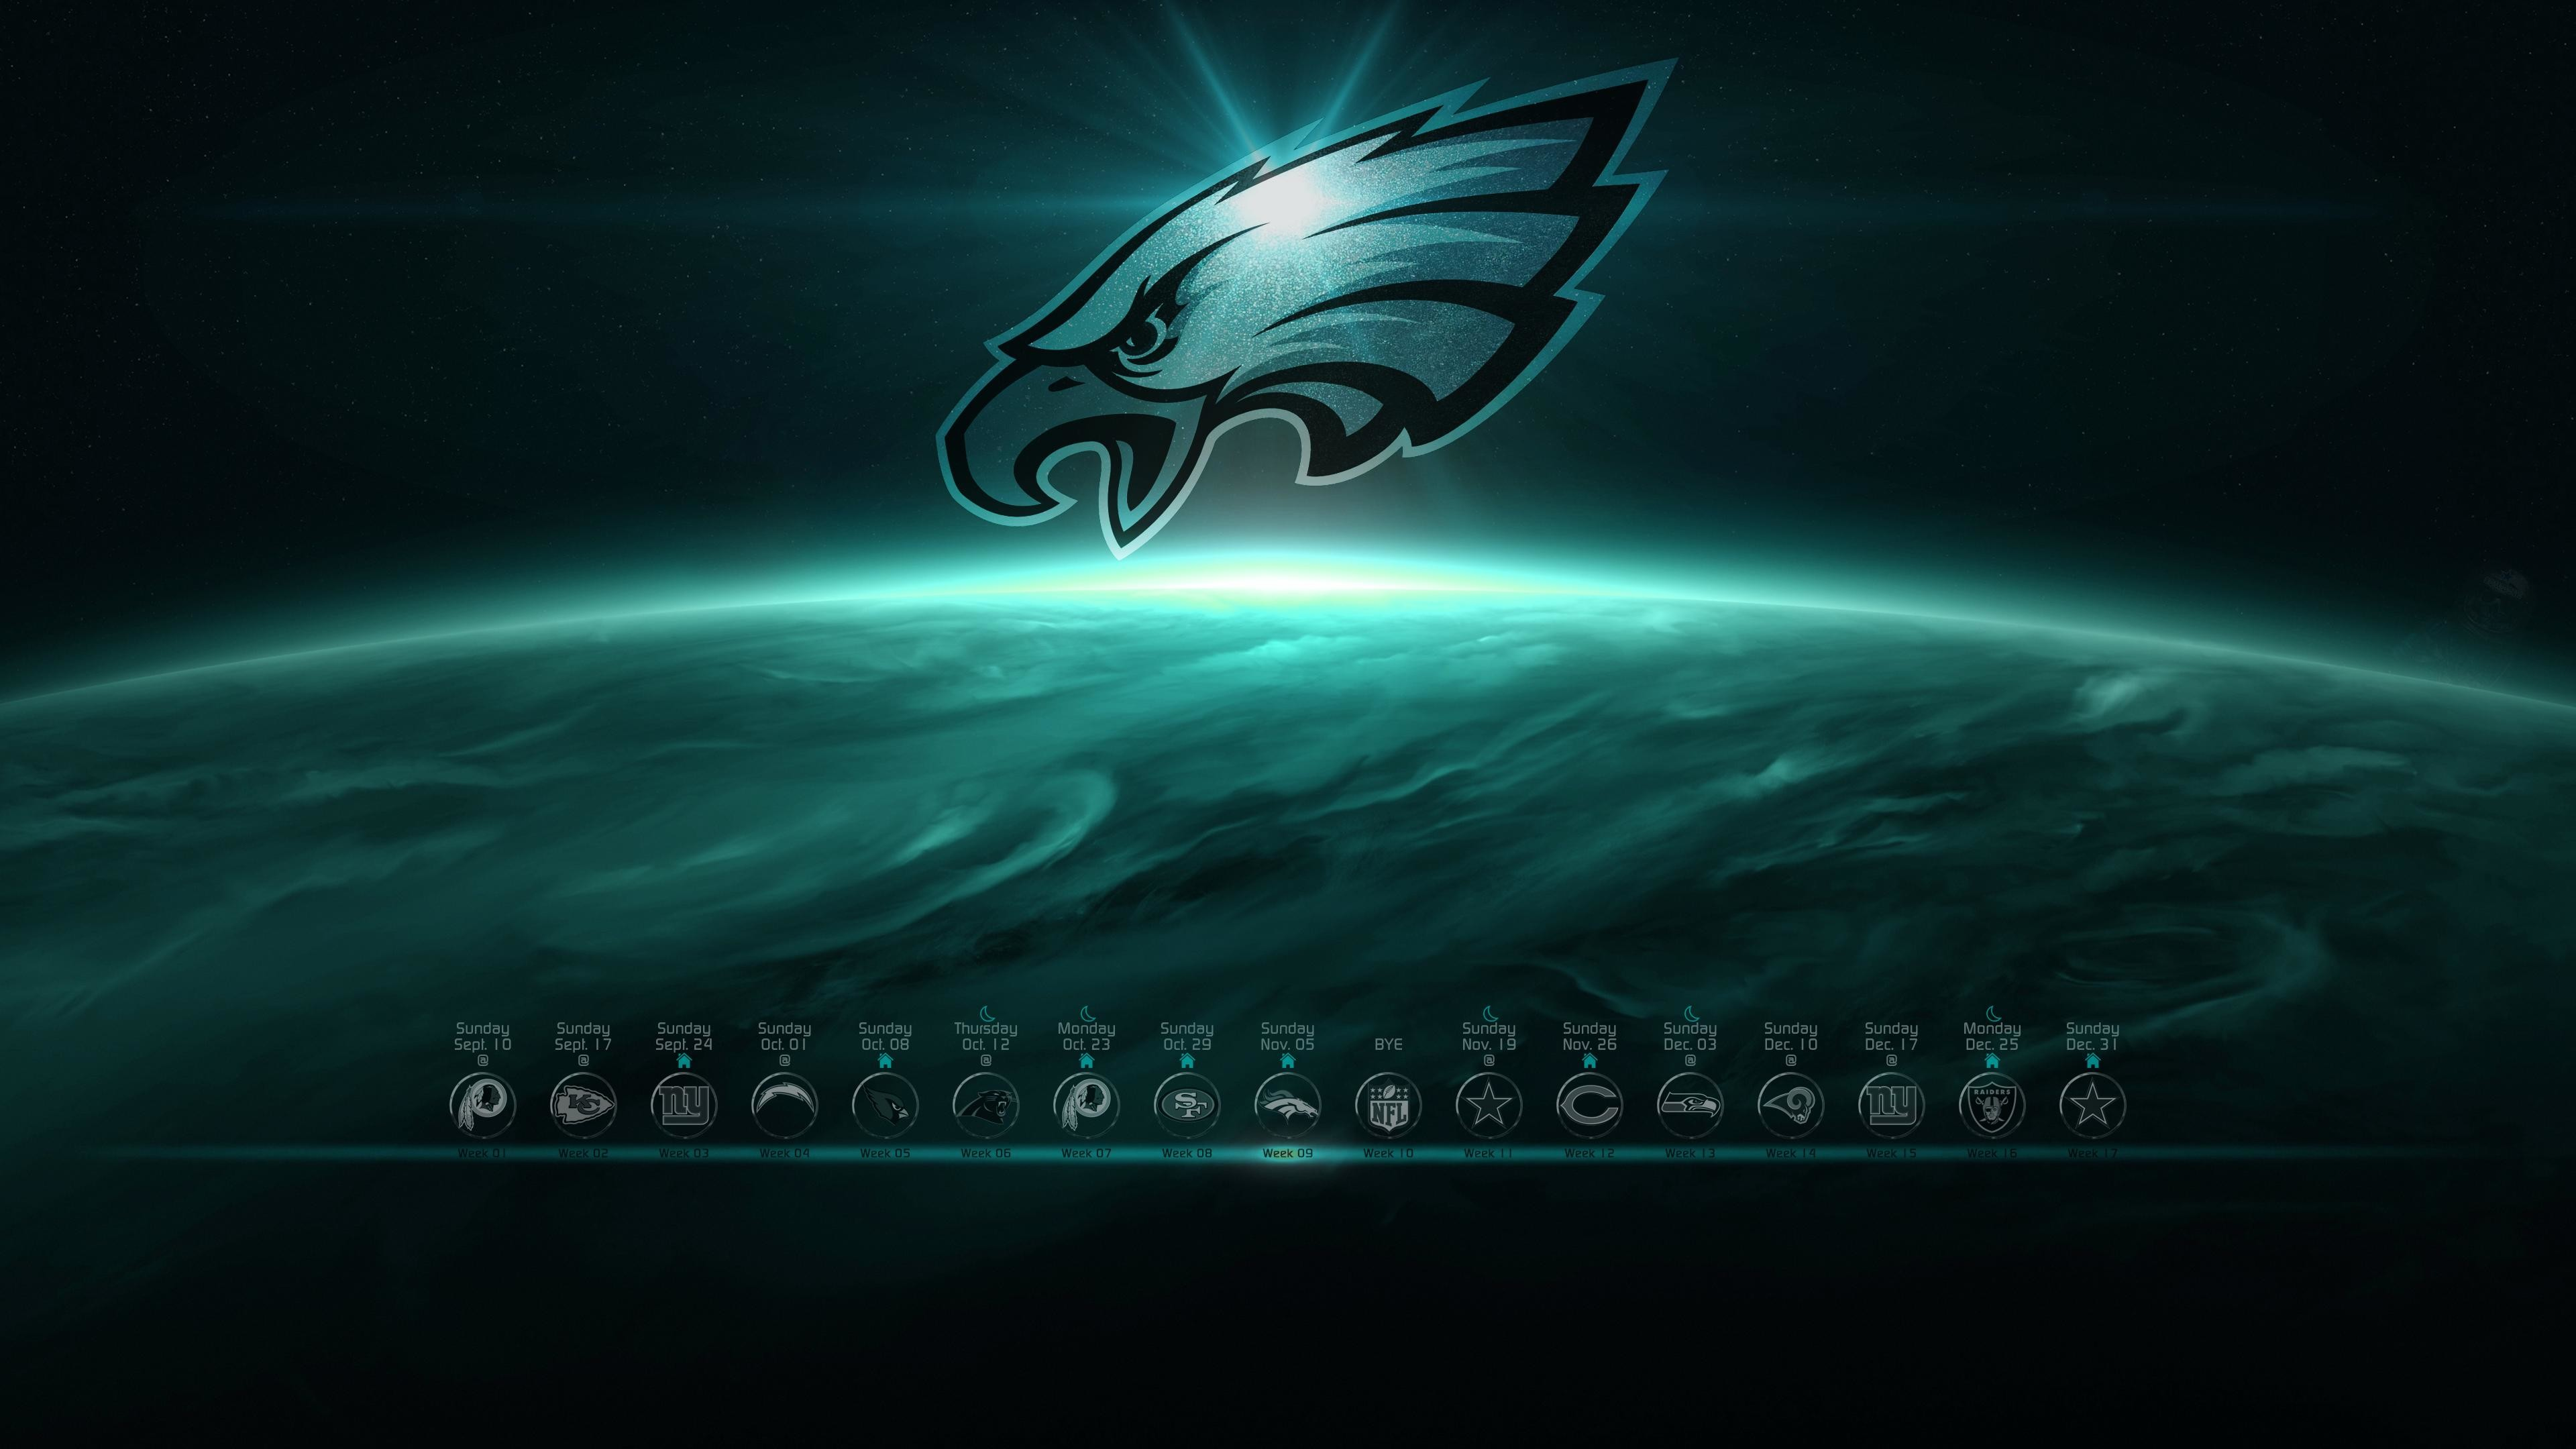 Res: 3840x2160, Philadelphia Eagles Wallpaper 2017 With Without Schedule Album For